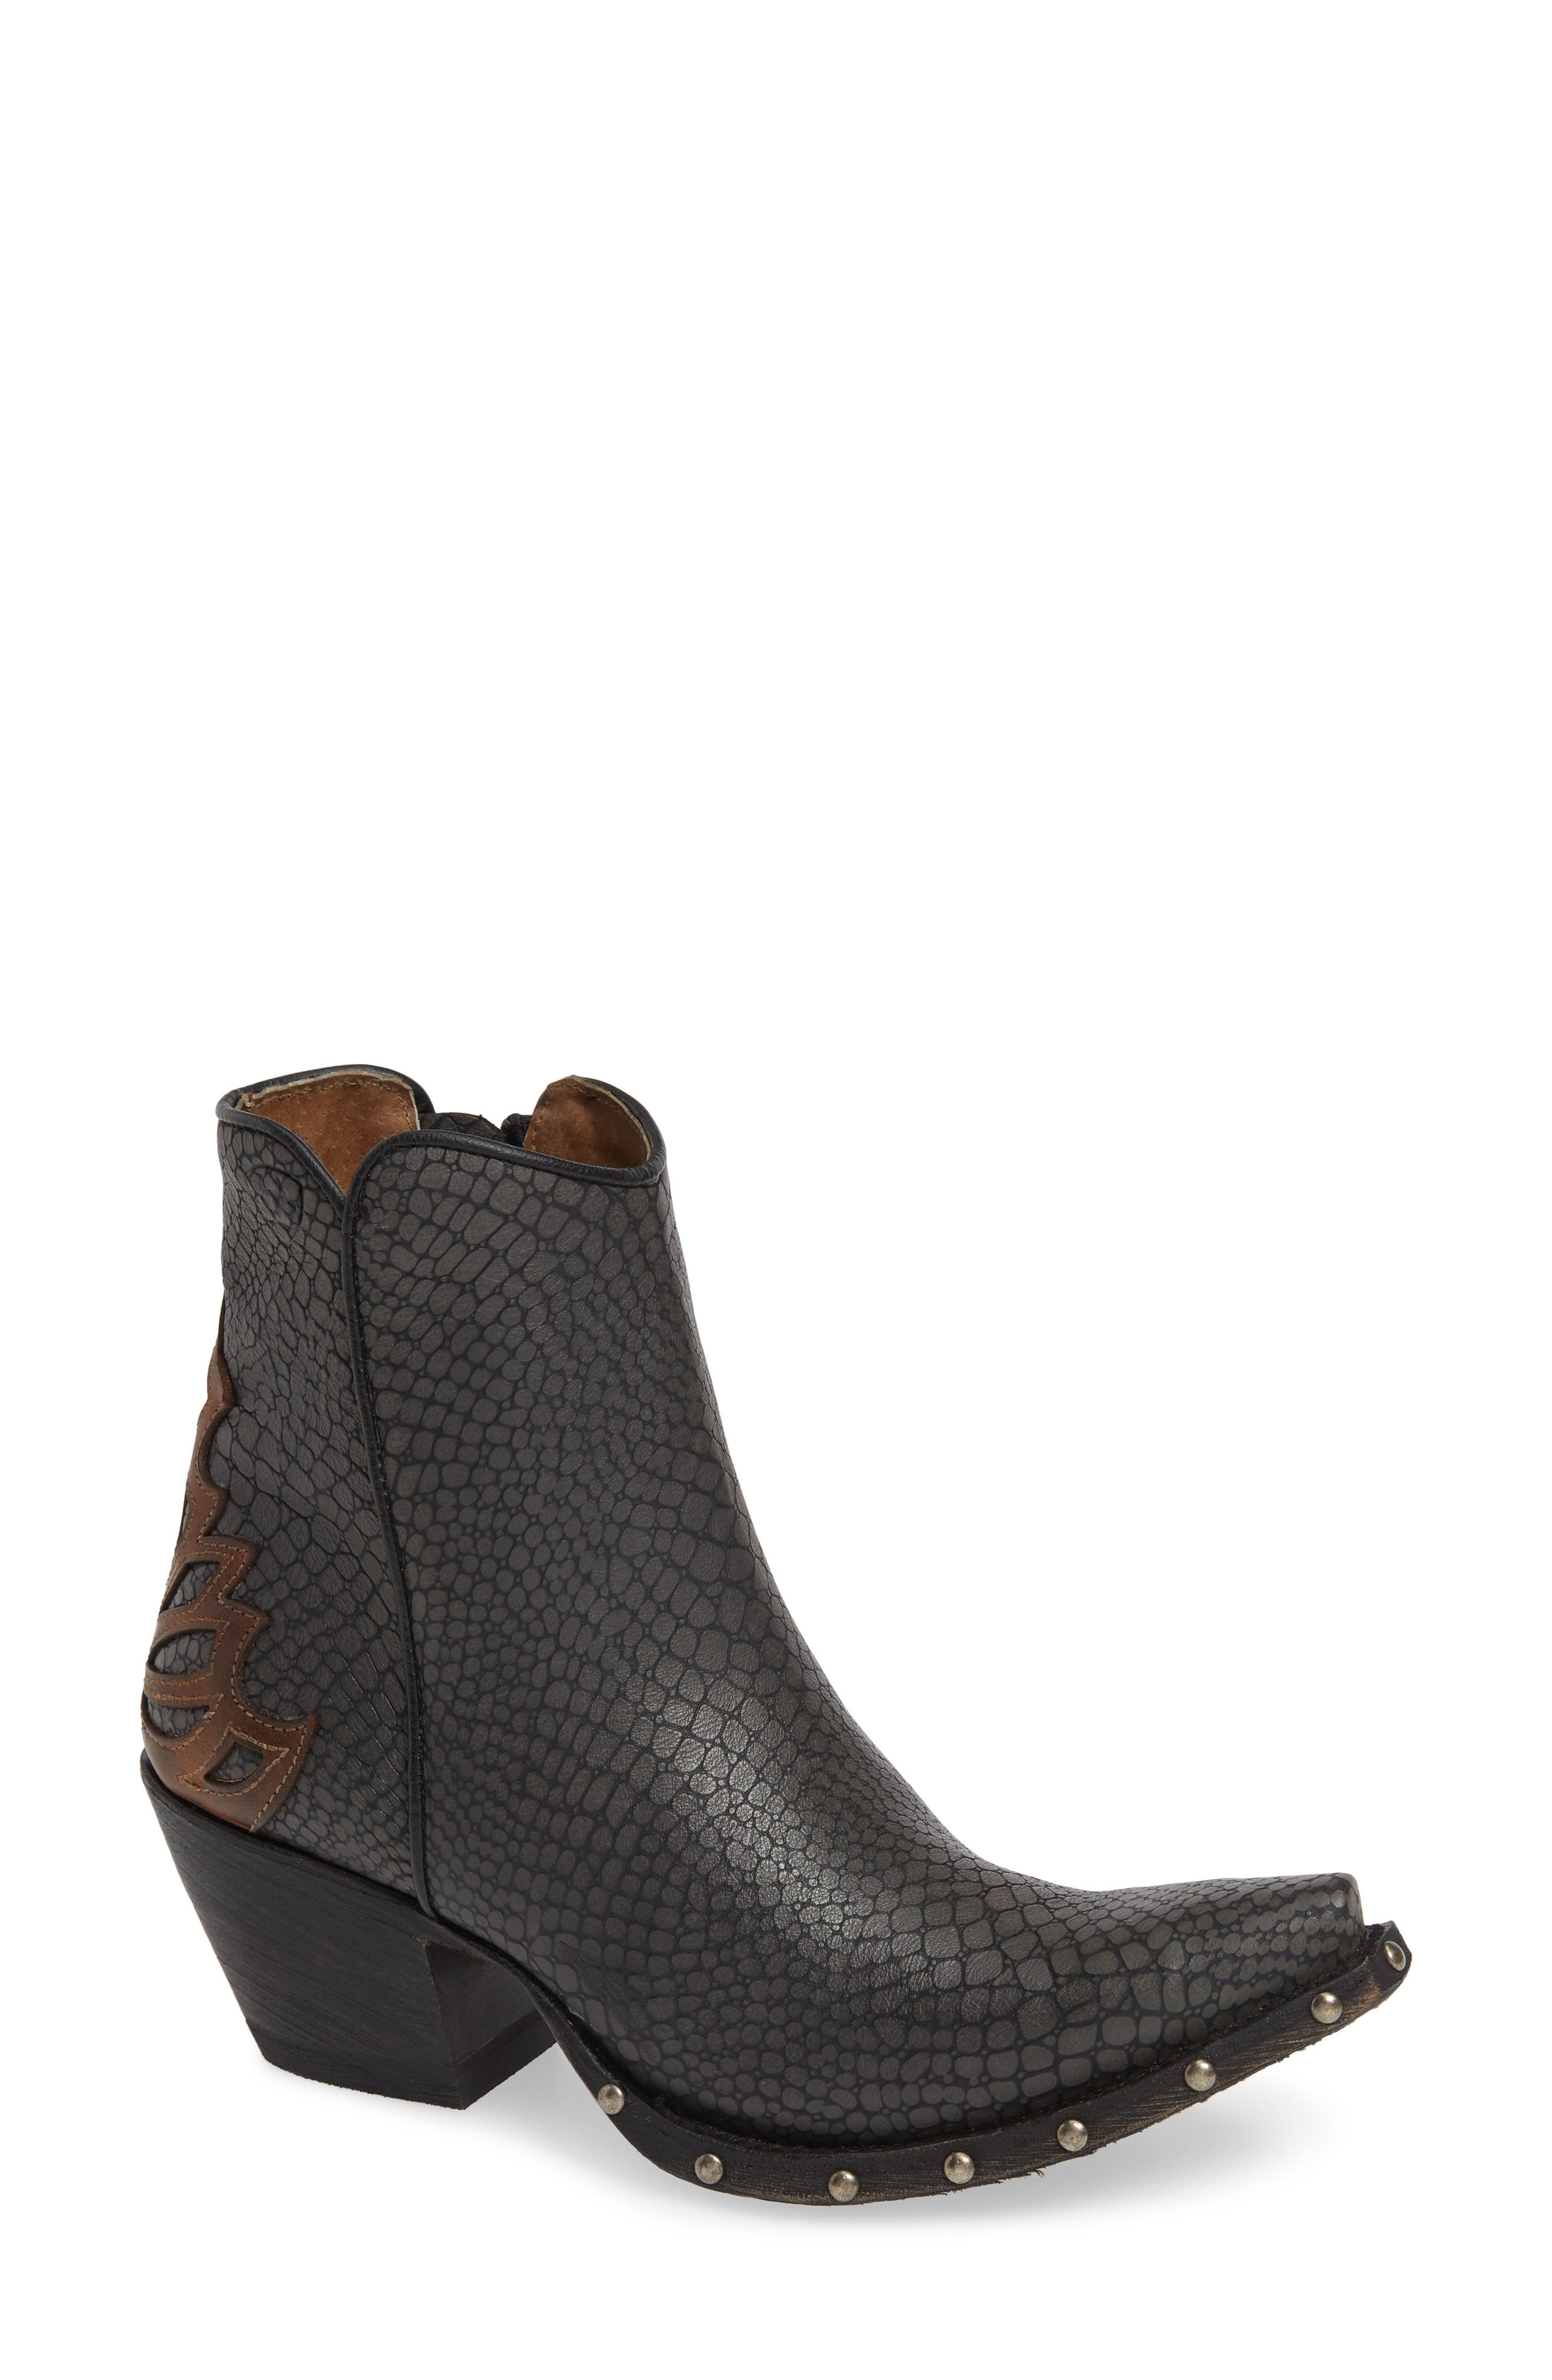 ARIAT Fenix Western Bootie, Main, color, CHIC GREY CRACKLED TAN LEATHER